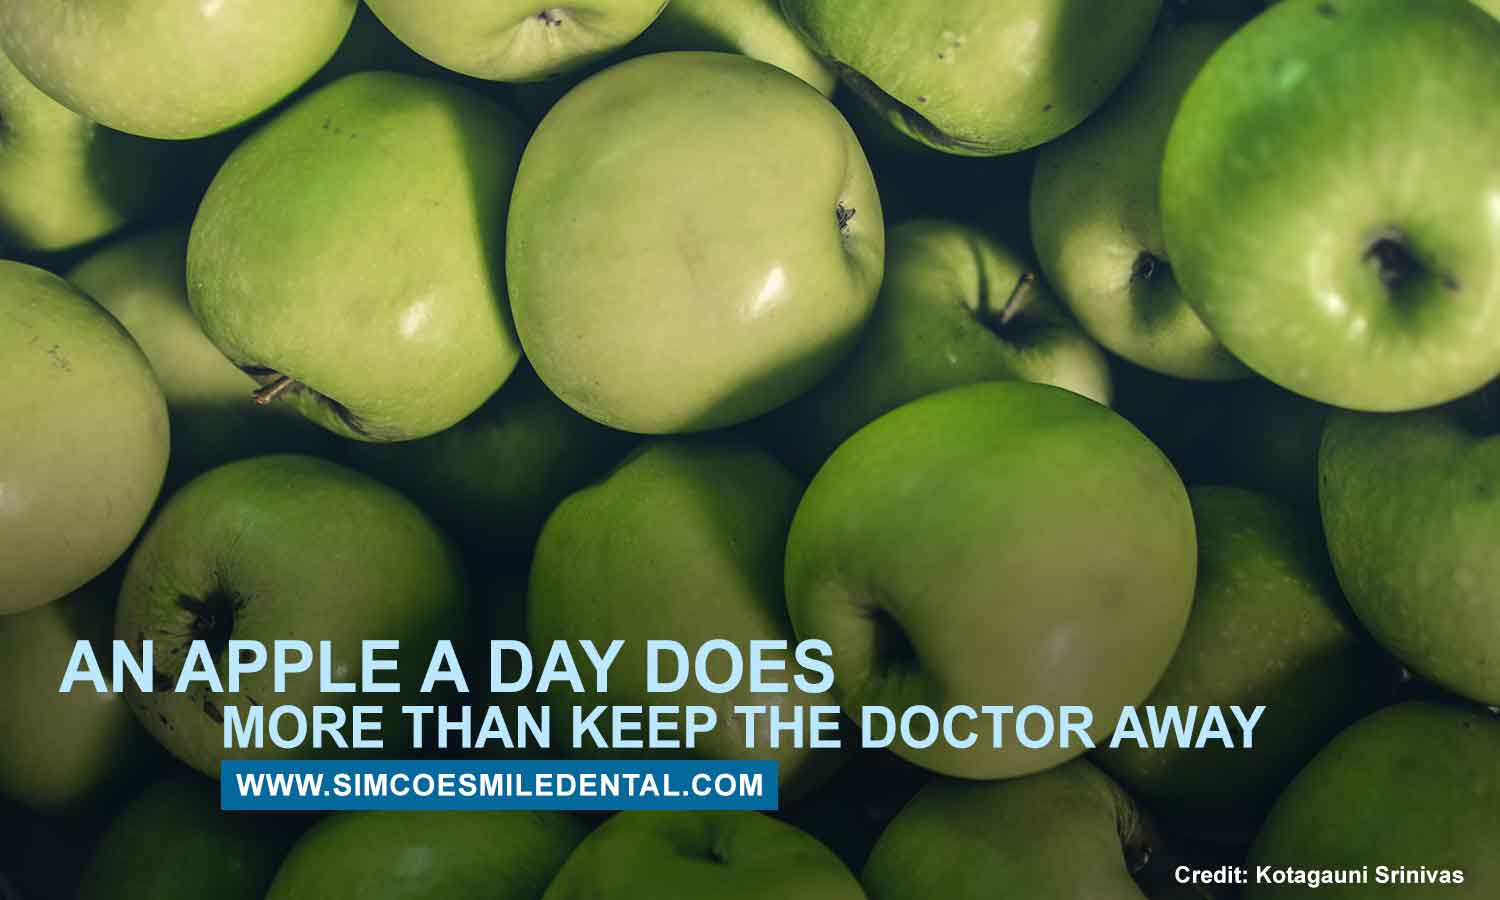 An-apple-a-day-does-more-than-keep-the-doctor-away Food And Your Oral Health